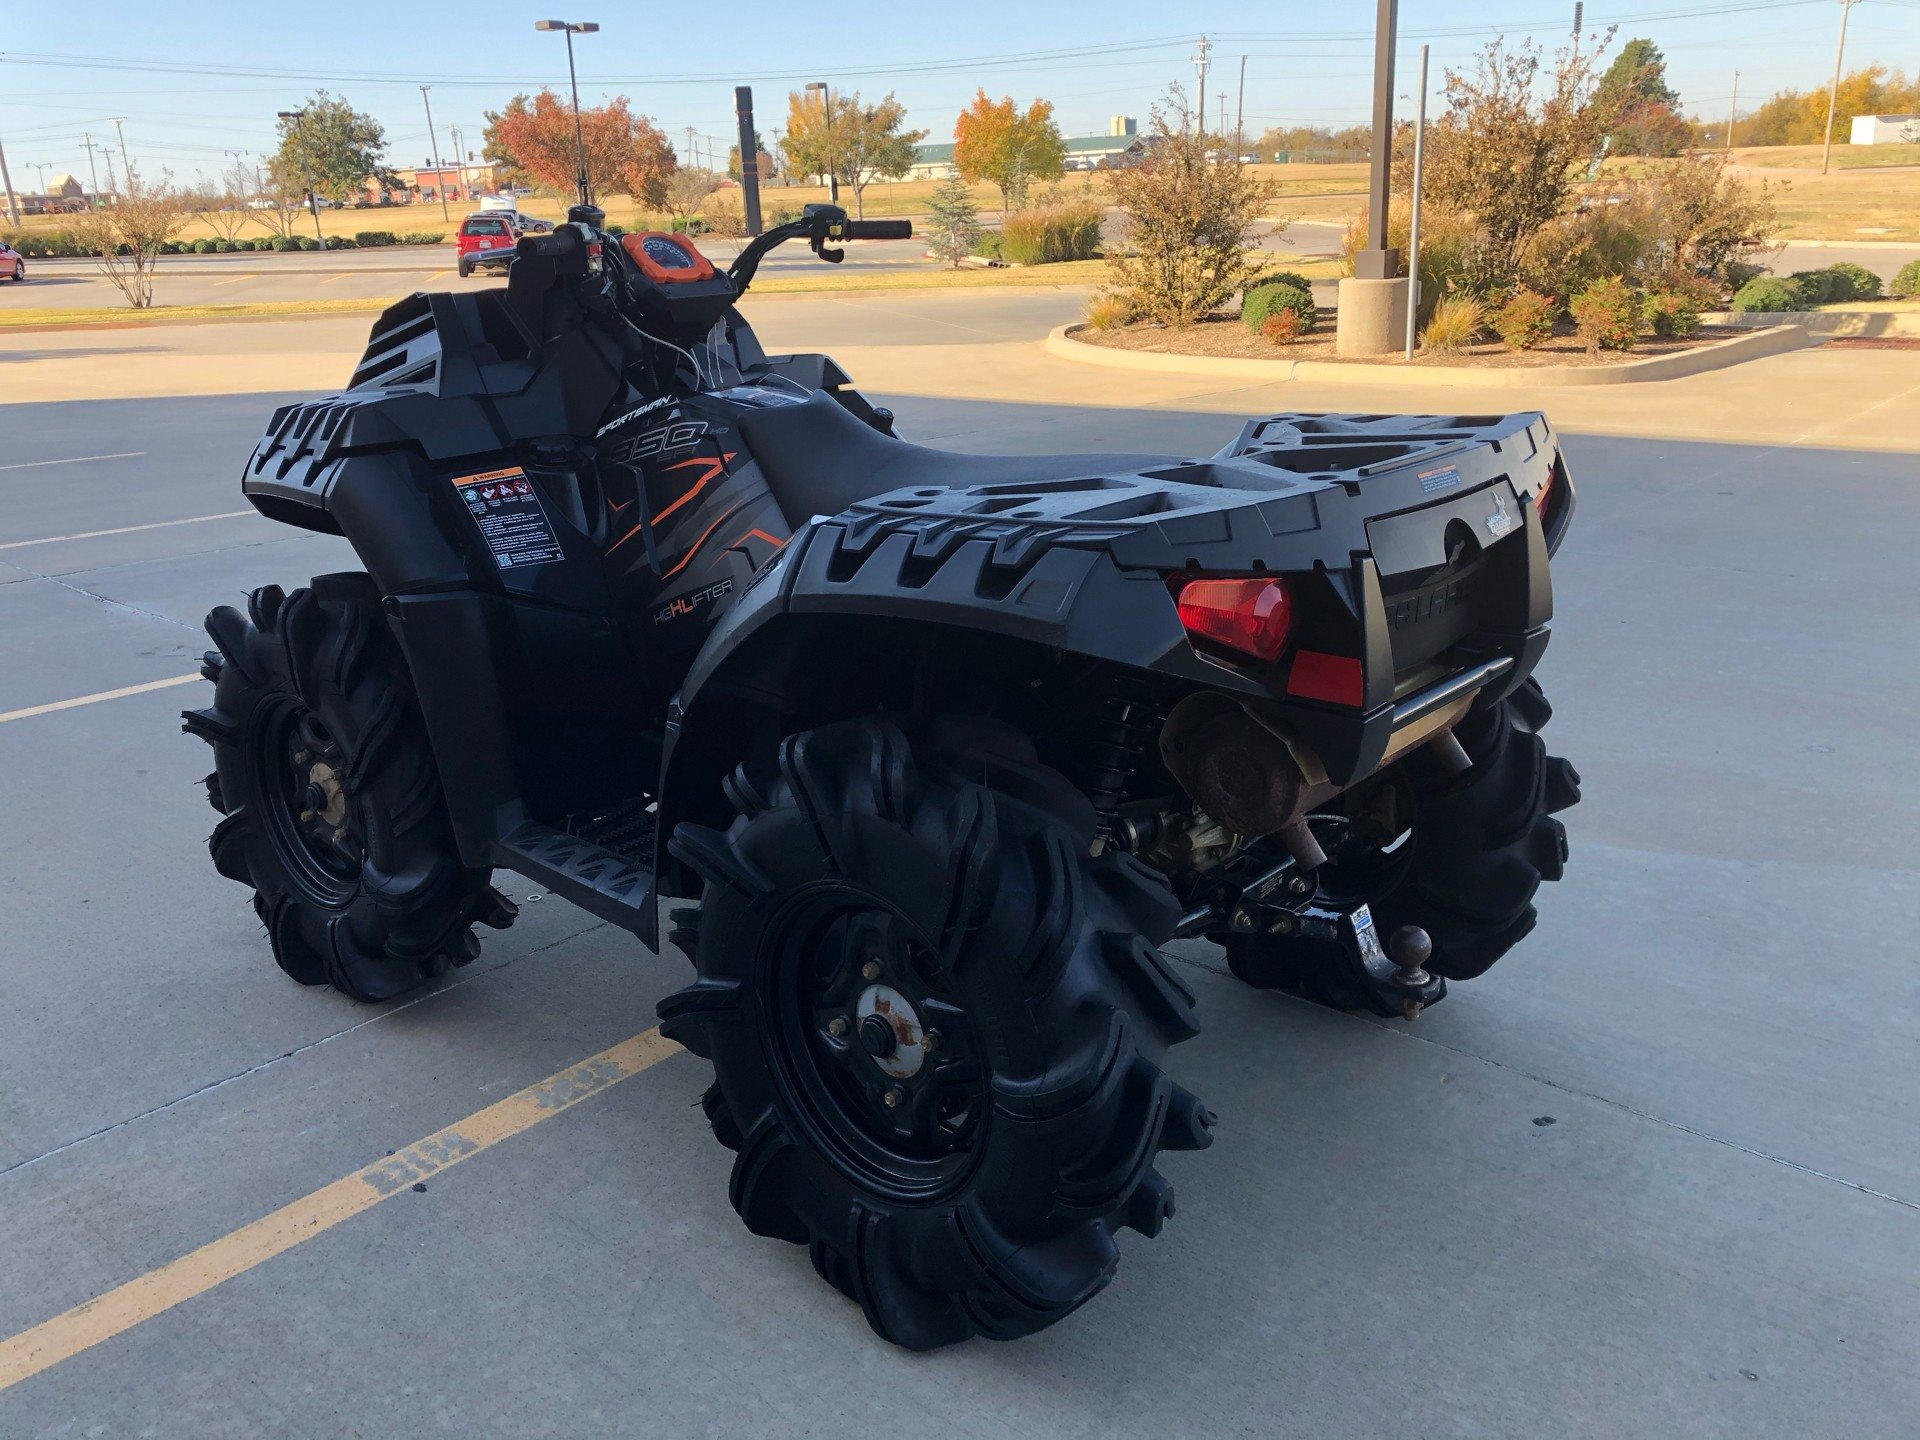 2019 Polaris Sportsman 850 High Lifter Edition in Norman, Oklahoma - Photo 6